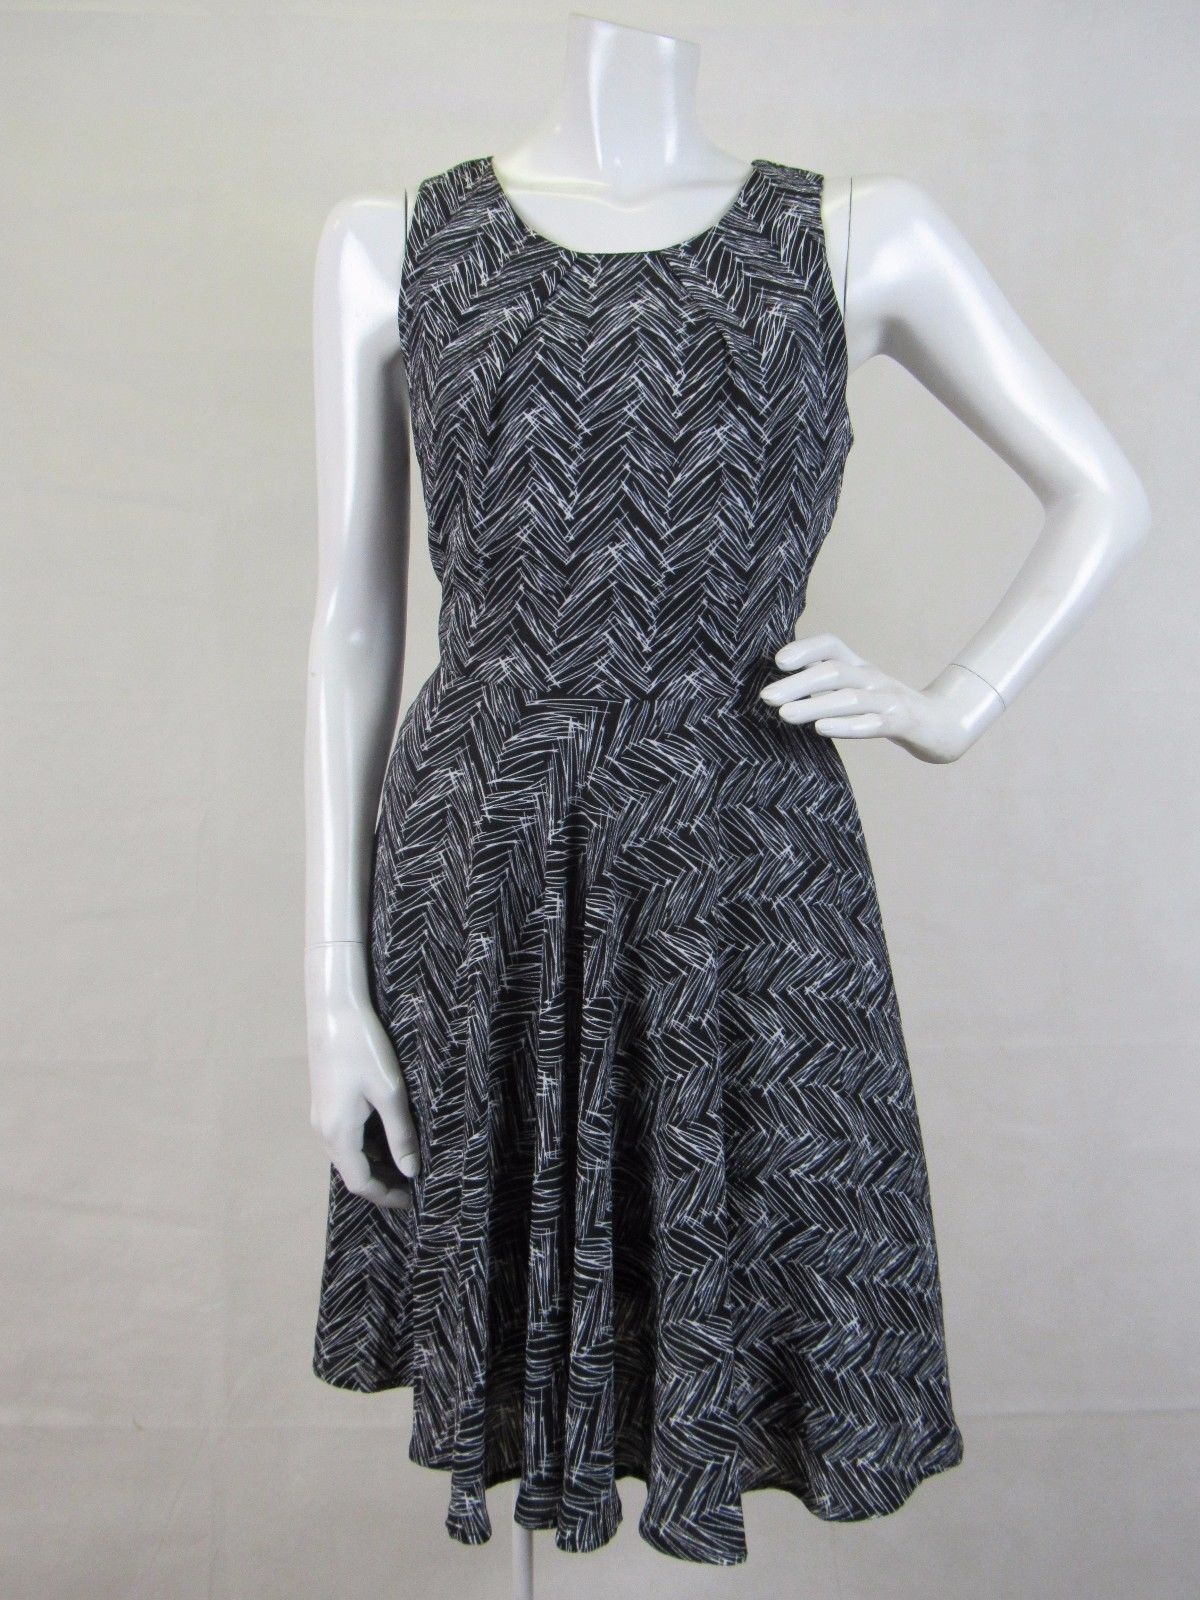 Primary image for 41 Hawthorn Knee Length Dress Stitch Fix Size S-- NWOT $74